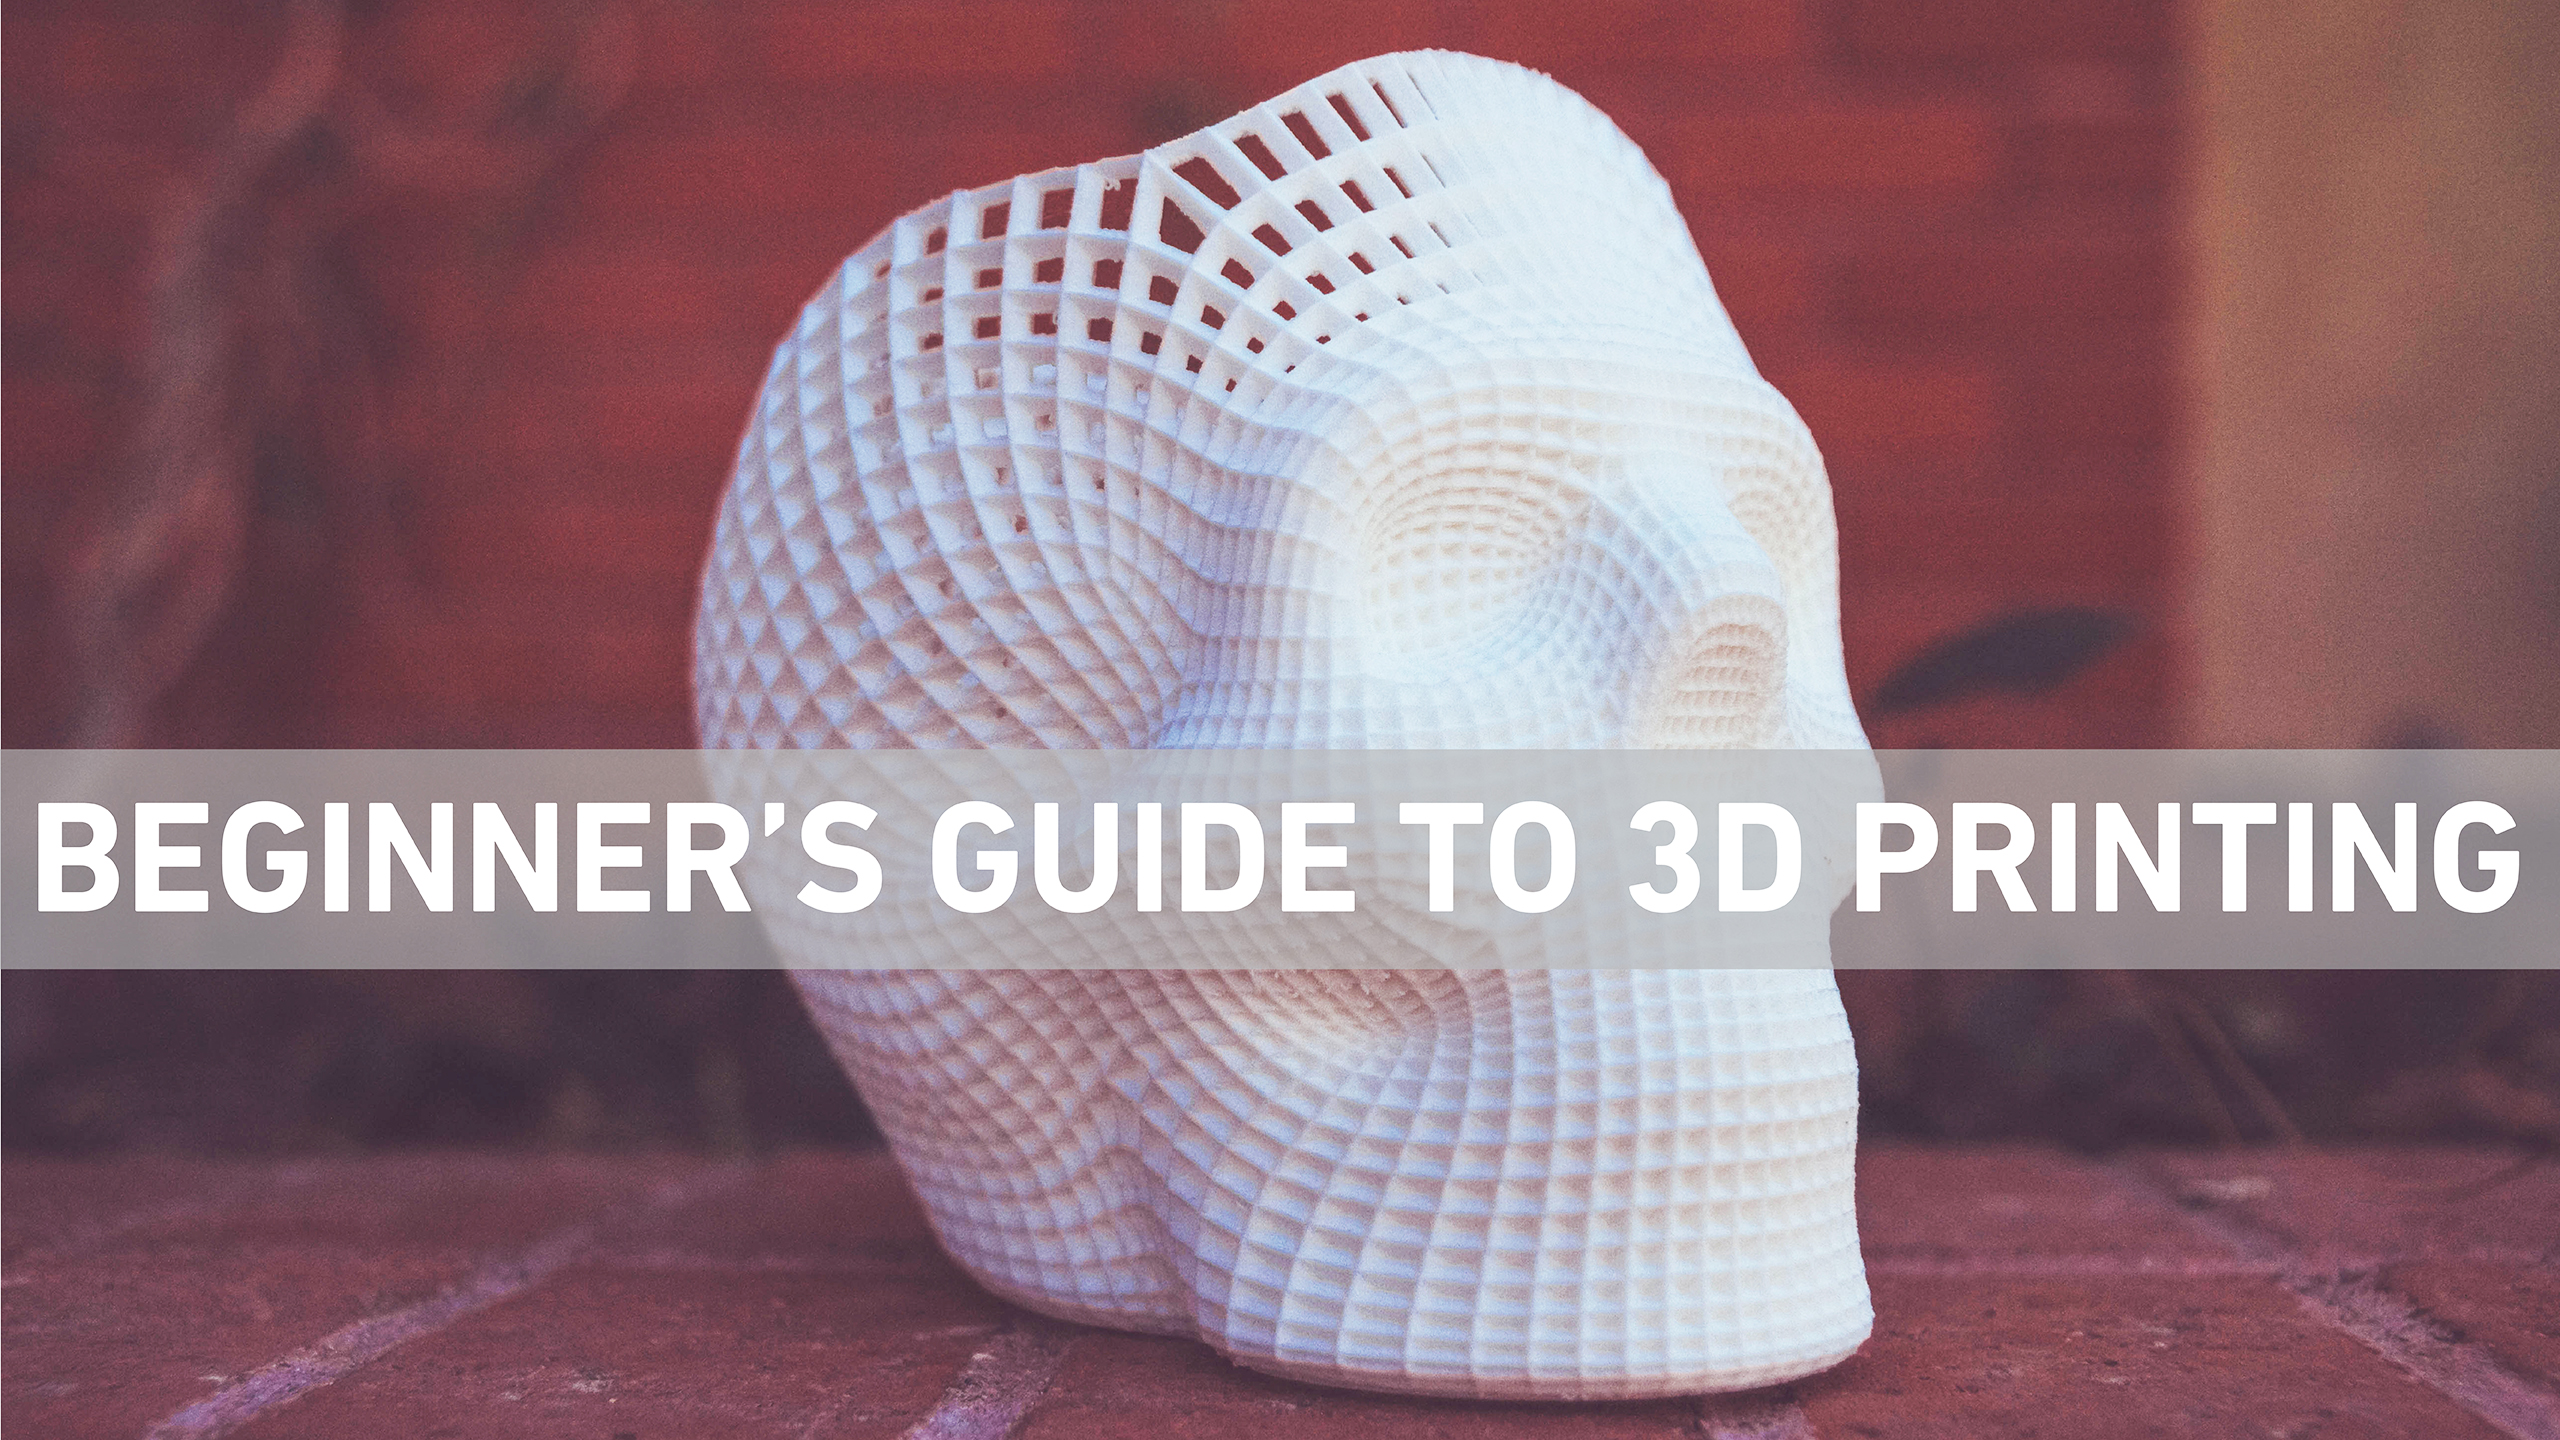 3D Printing is an Advanced Manufacturing Technique